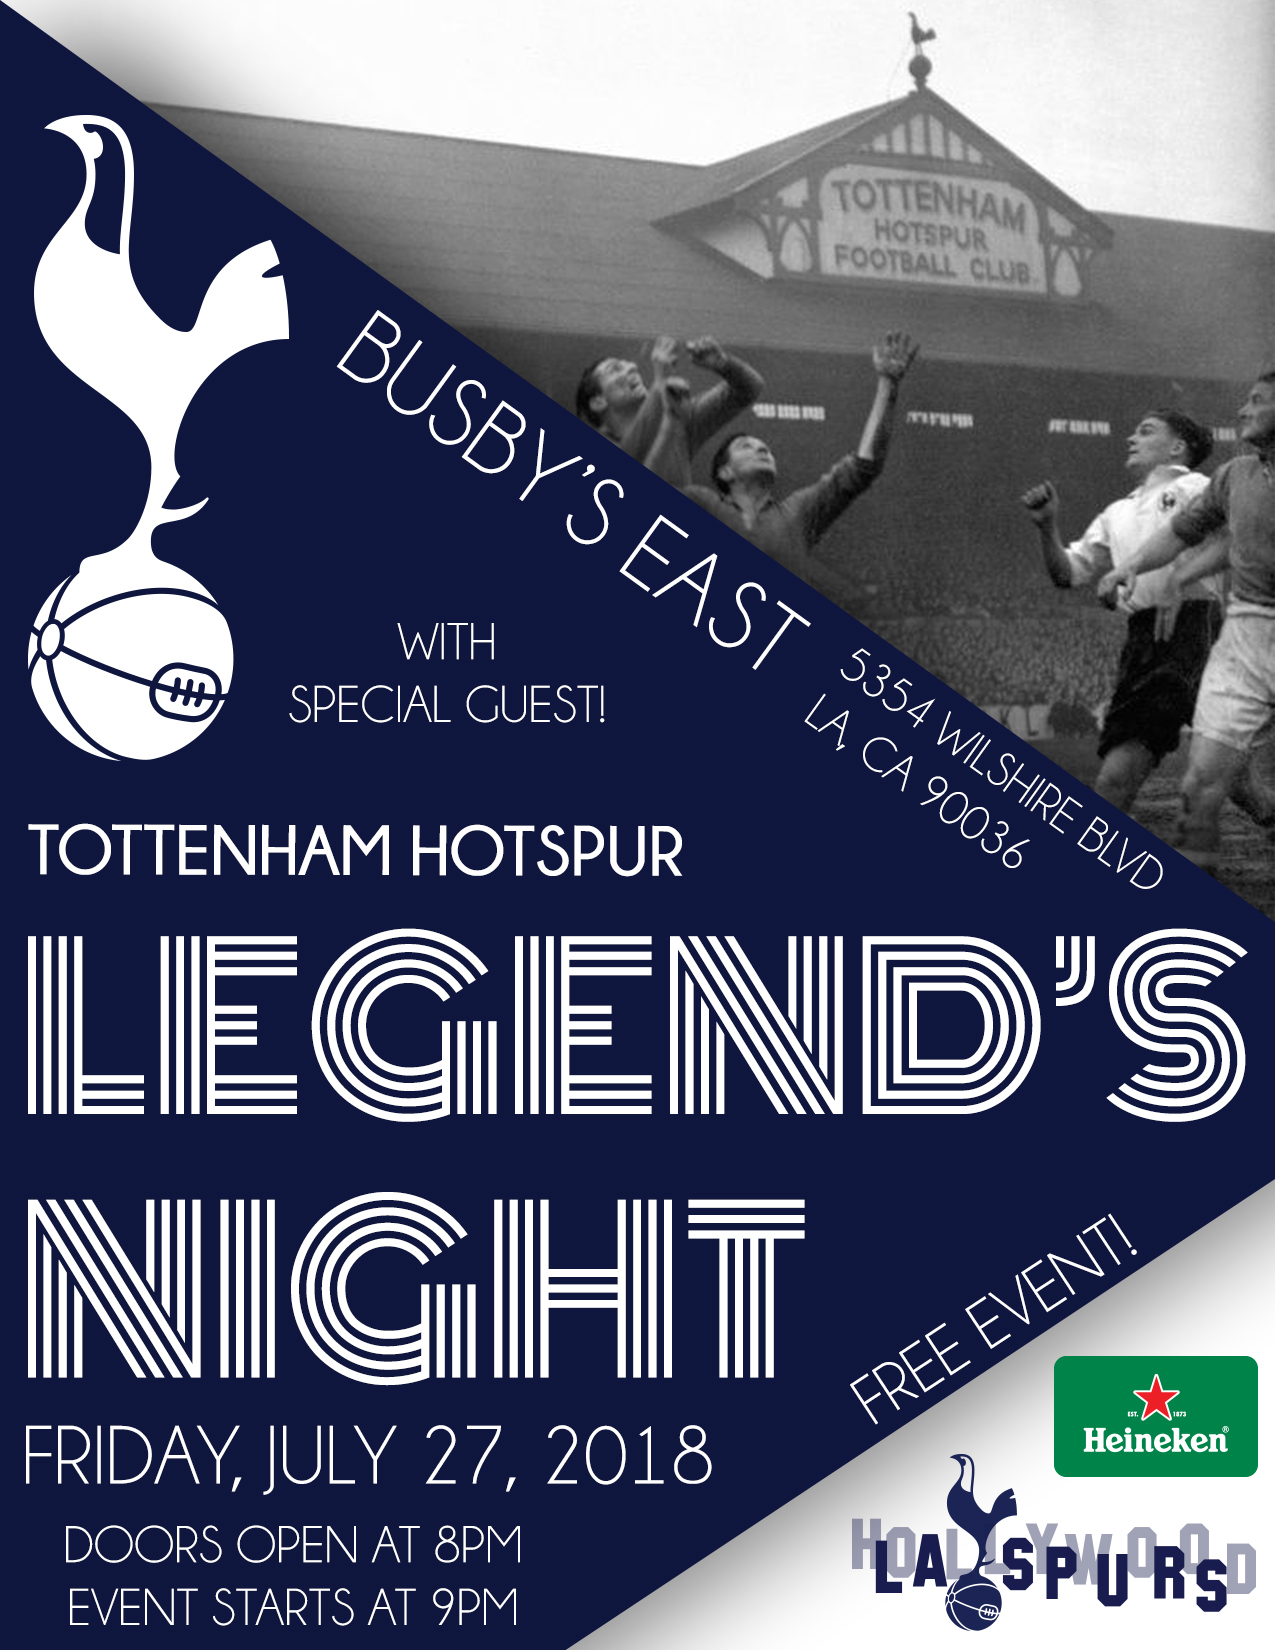 LEGEND'S NIGHT: Los Angeles Spurs Supporters' Club Evening. *LEDLEY KING & DARREN ANDERTON*